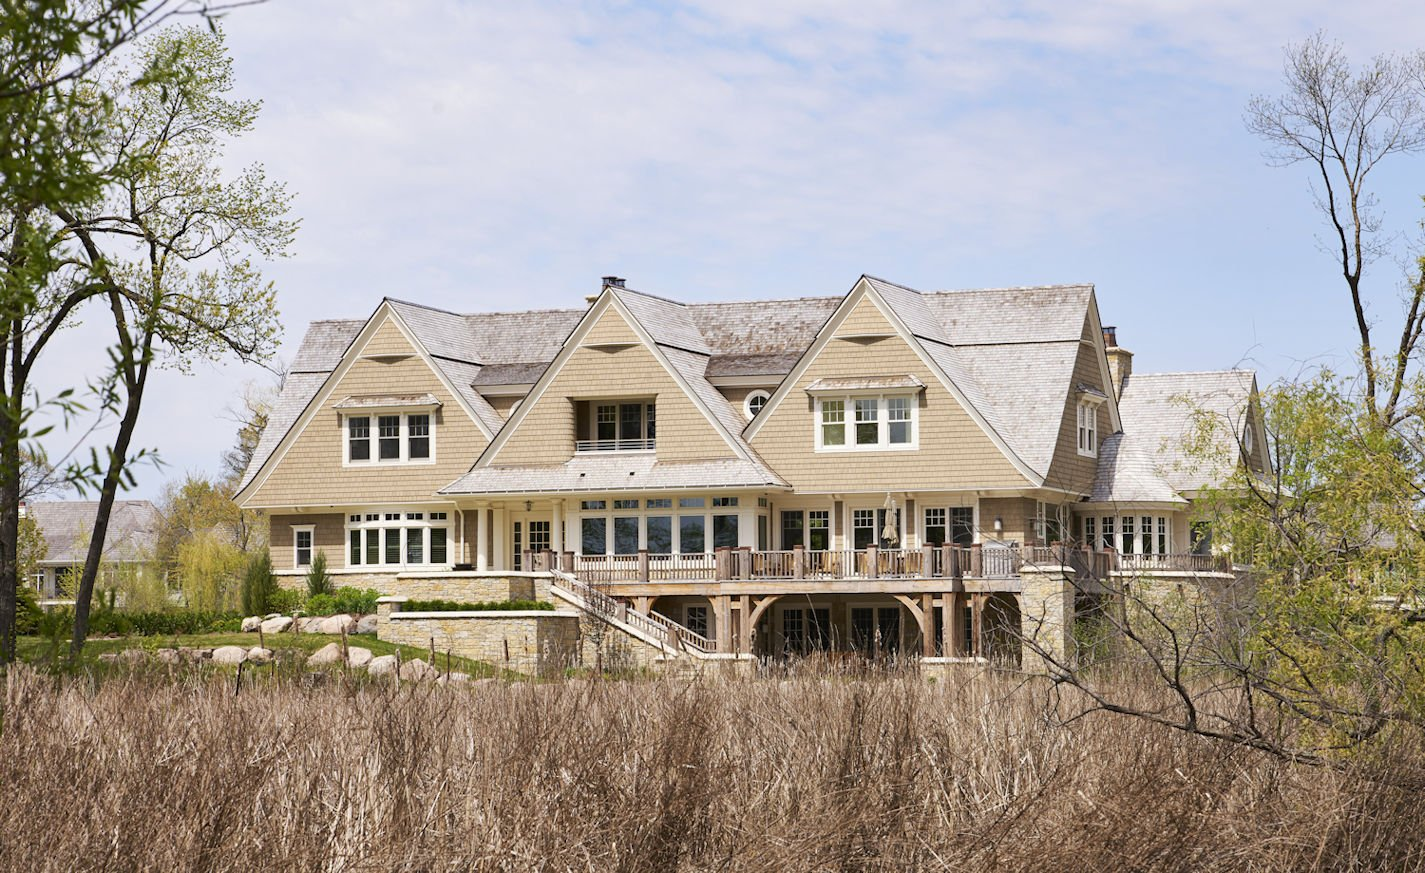 exterior view of Minnetonka Shingle Style home